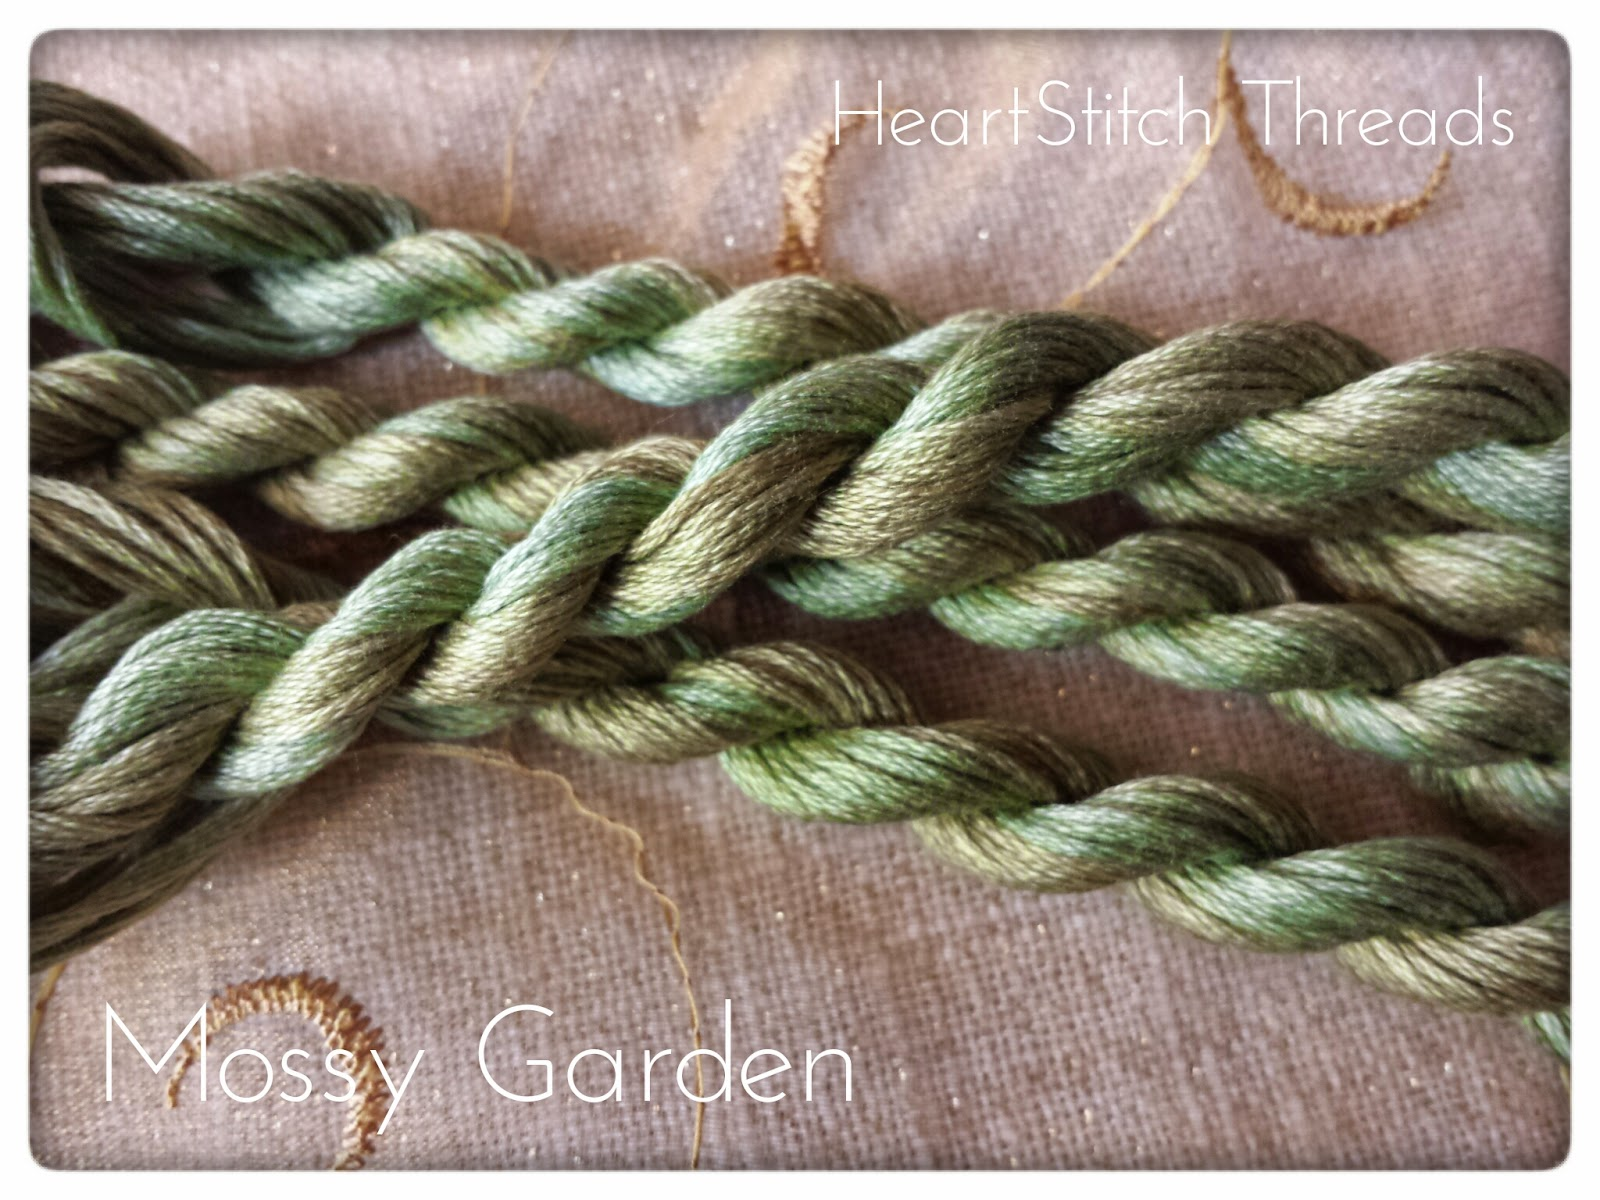 http://heartstitchdesigns.blogspot.it/p/heartstitch-threads-hand-dyed-antiquity.html